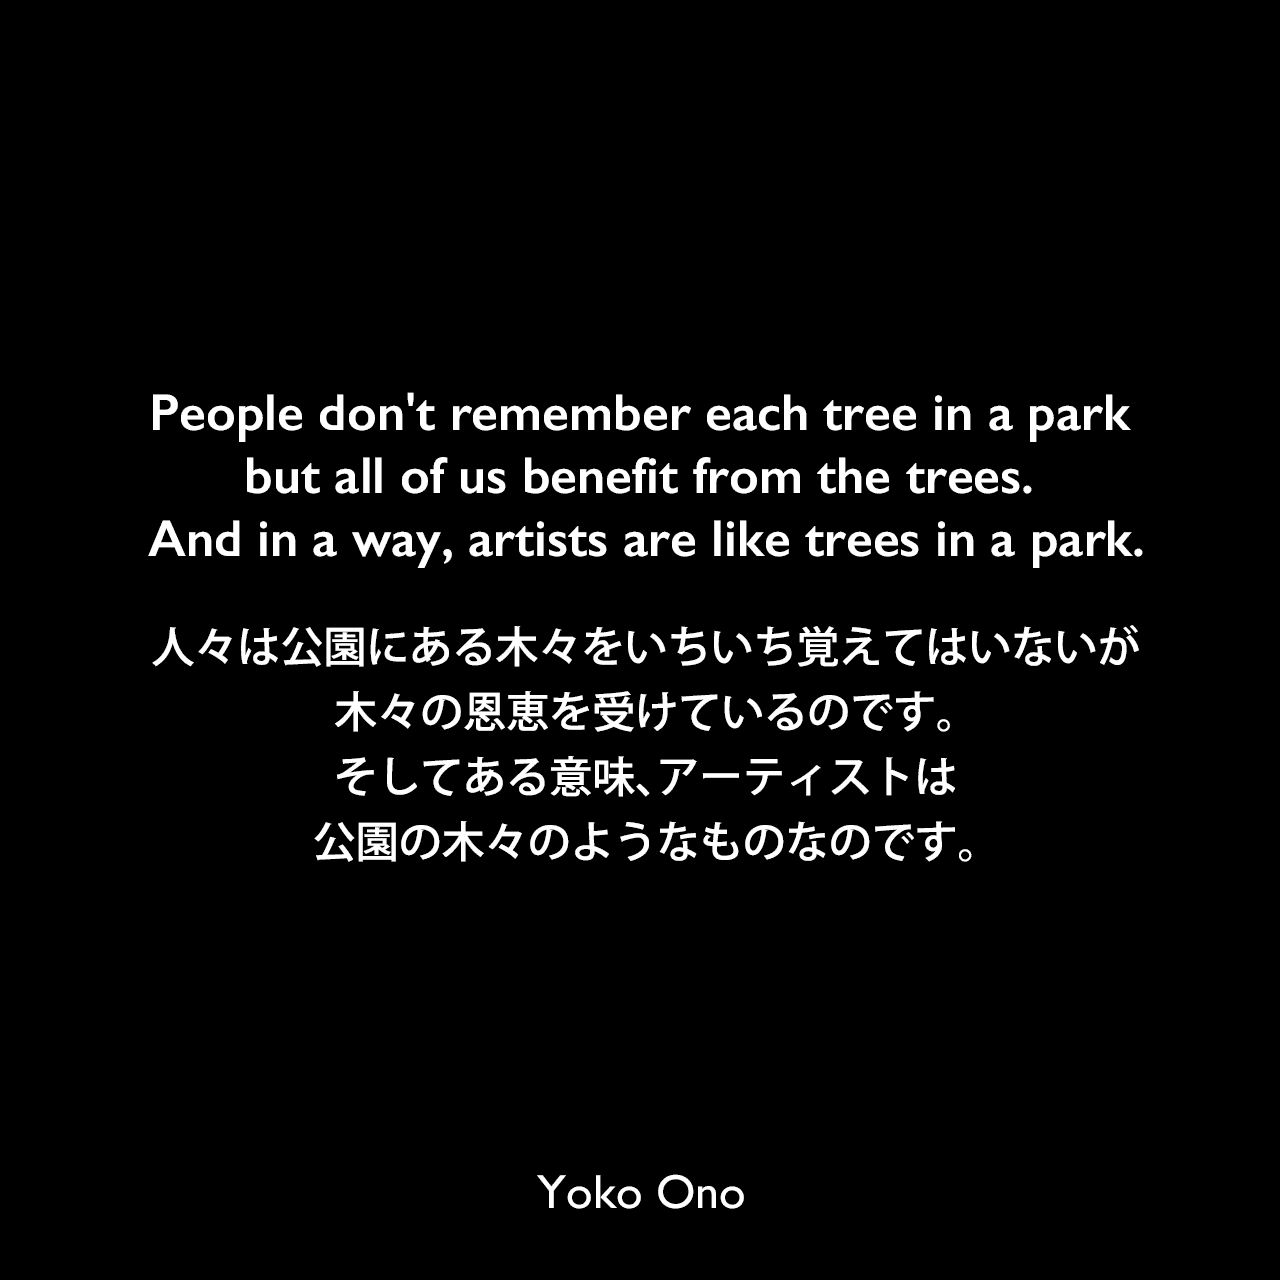 People don't remember each tree in a park but all of us benefit from the trees. And in a way, artists are like trees in a park.人々は公園にある木々をいちいち覚えてはいないが、木々の恩恵を受けているのです。そしてある意味、アーティストは公園の木々のようなものなのです。Yoko Ono